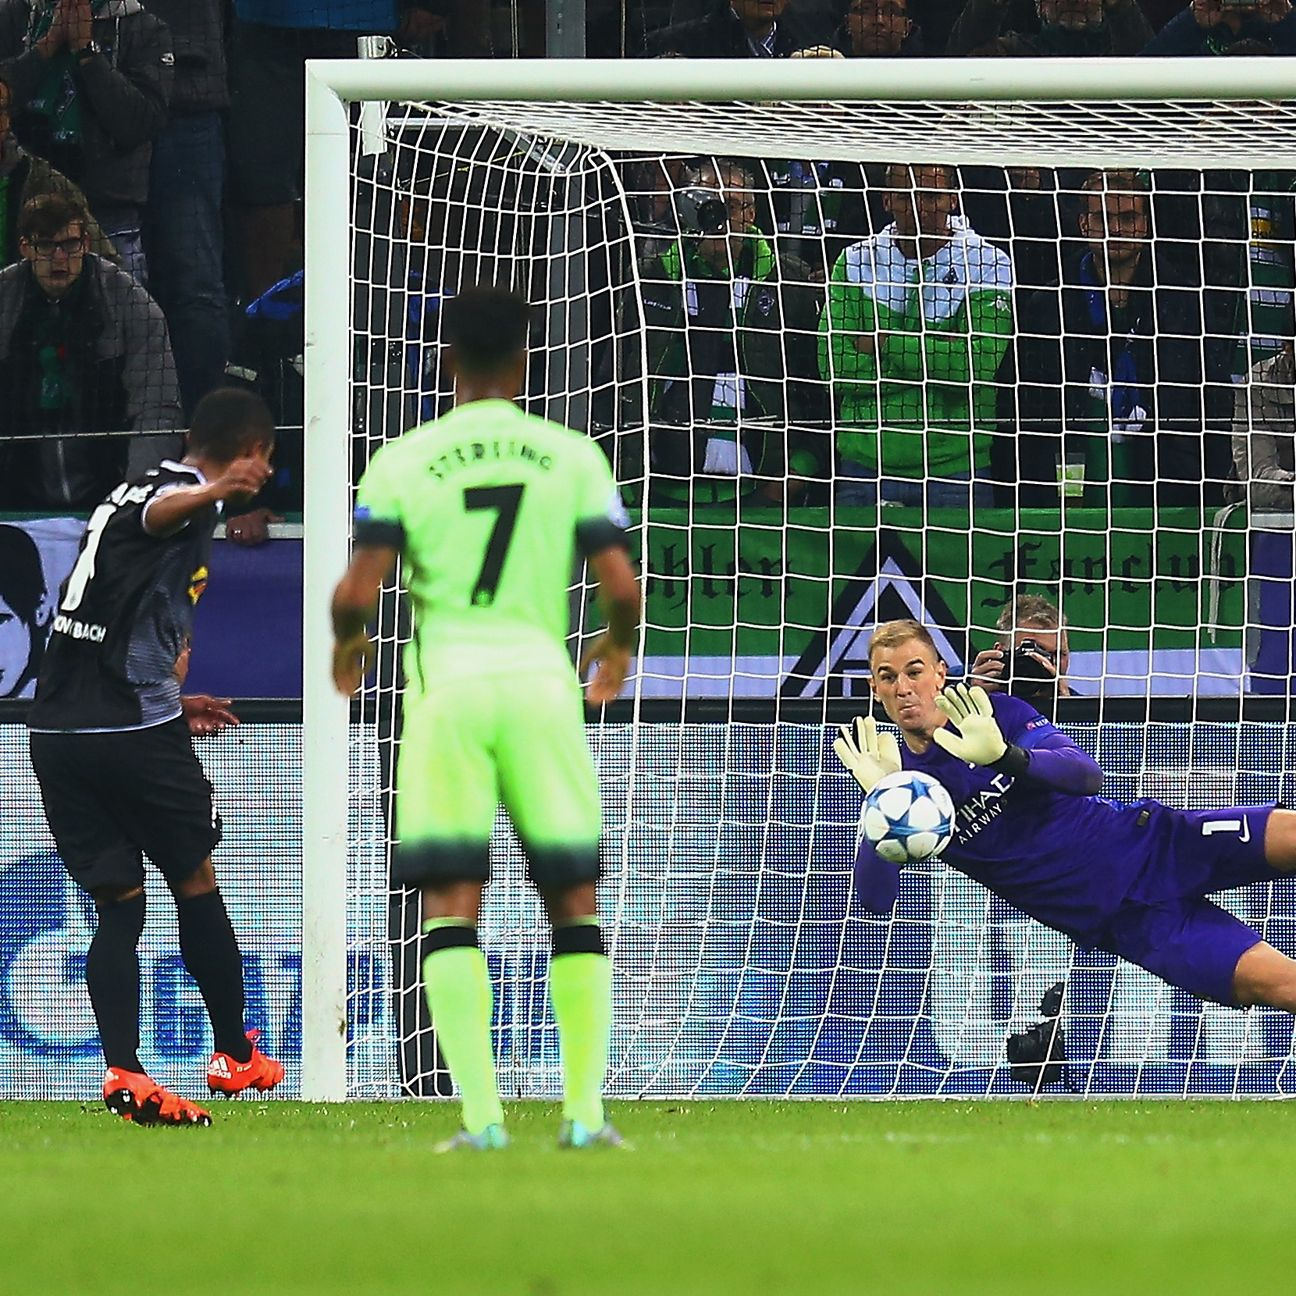 Joe Hart came up huge in the first half with a penalty save to help pave the way for City's comeback.